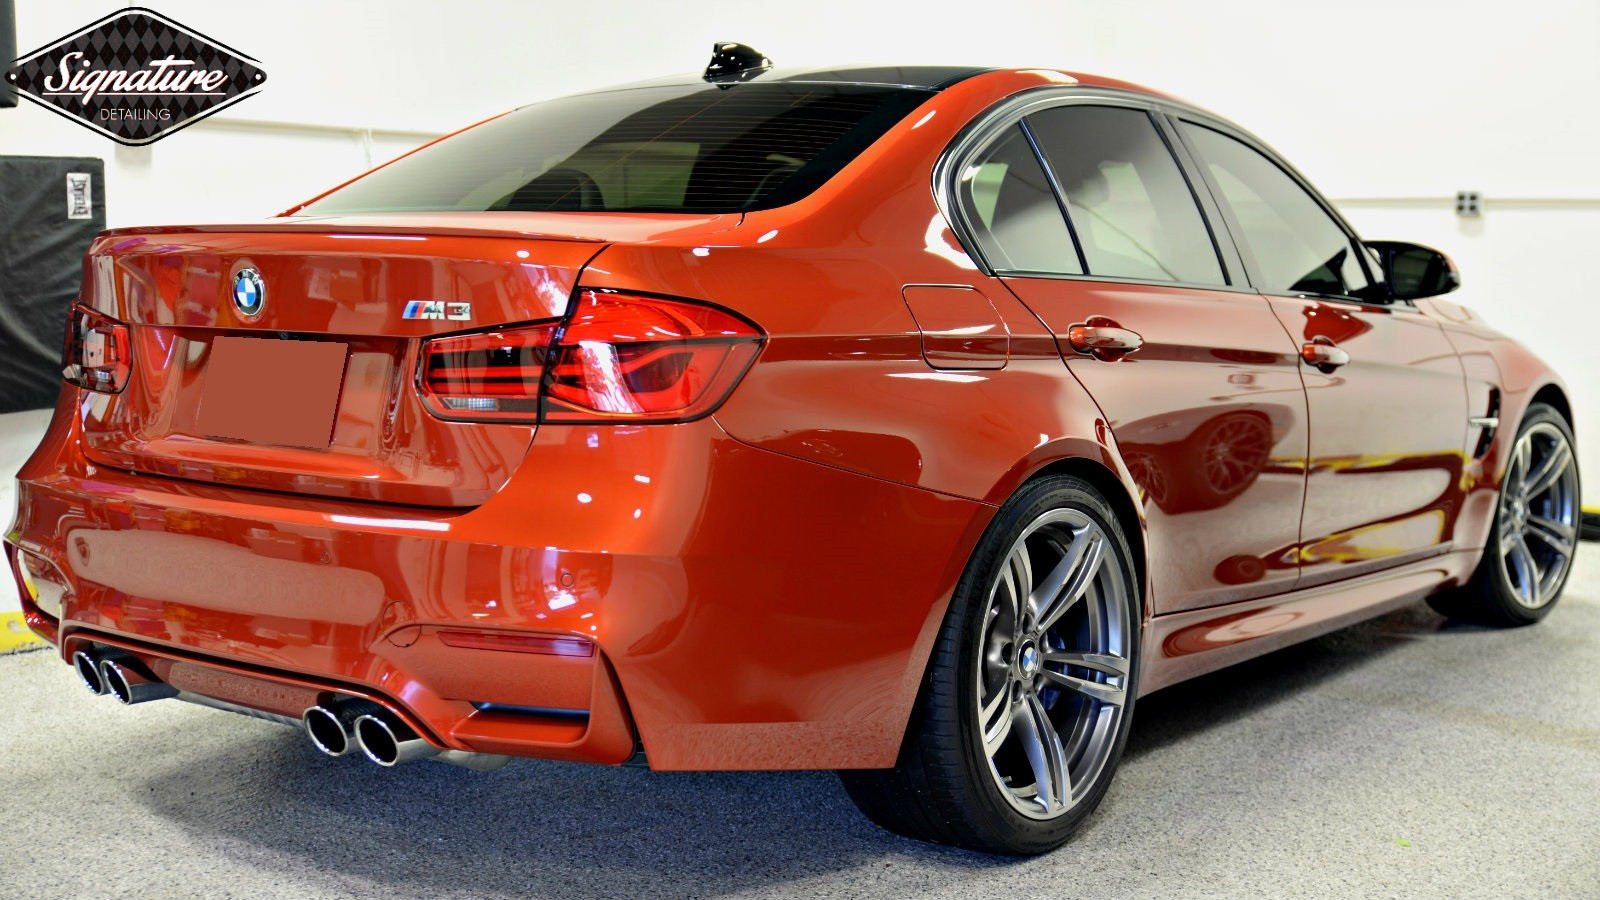 Greg Gellas of Signature Detailing NJ refined this BMW M3 with a full paint correction and ceramic nano coating.